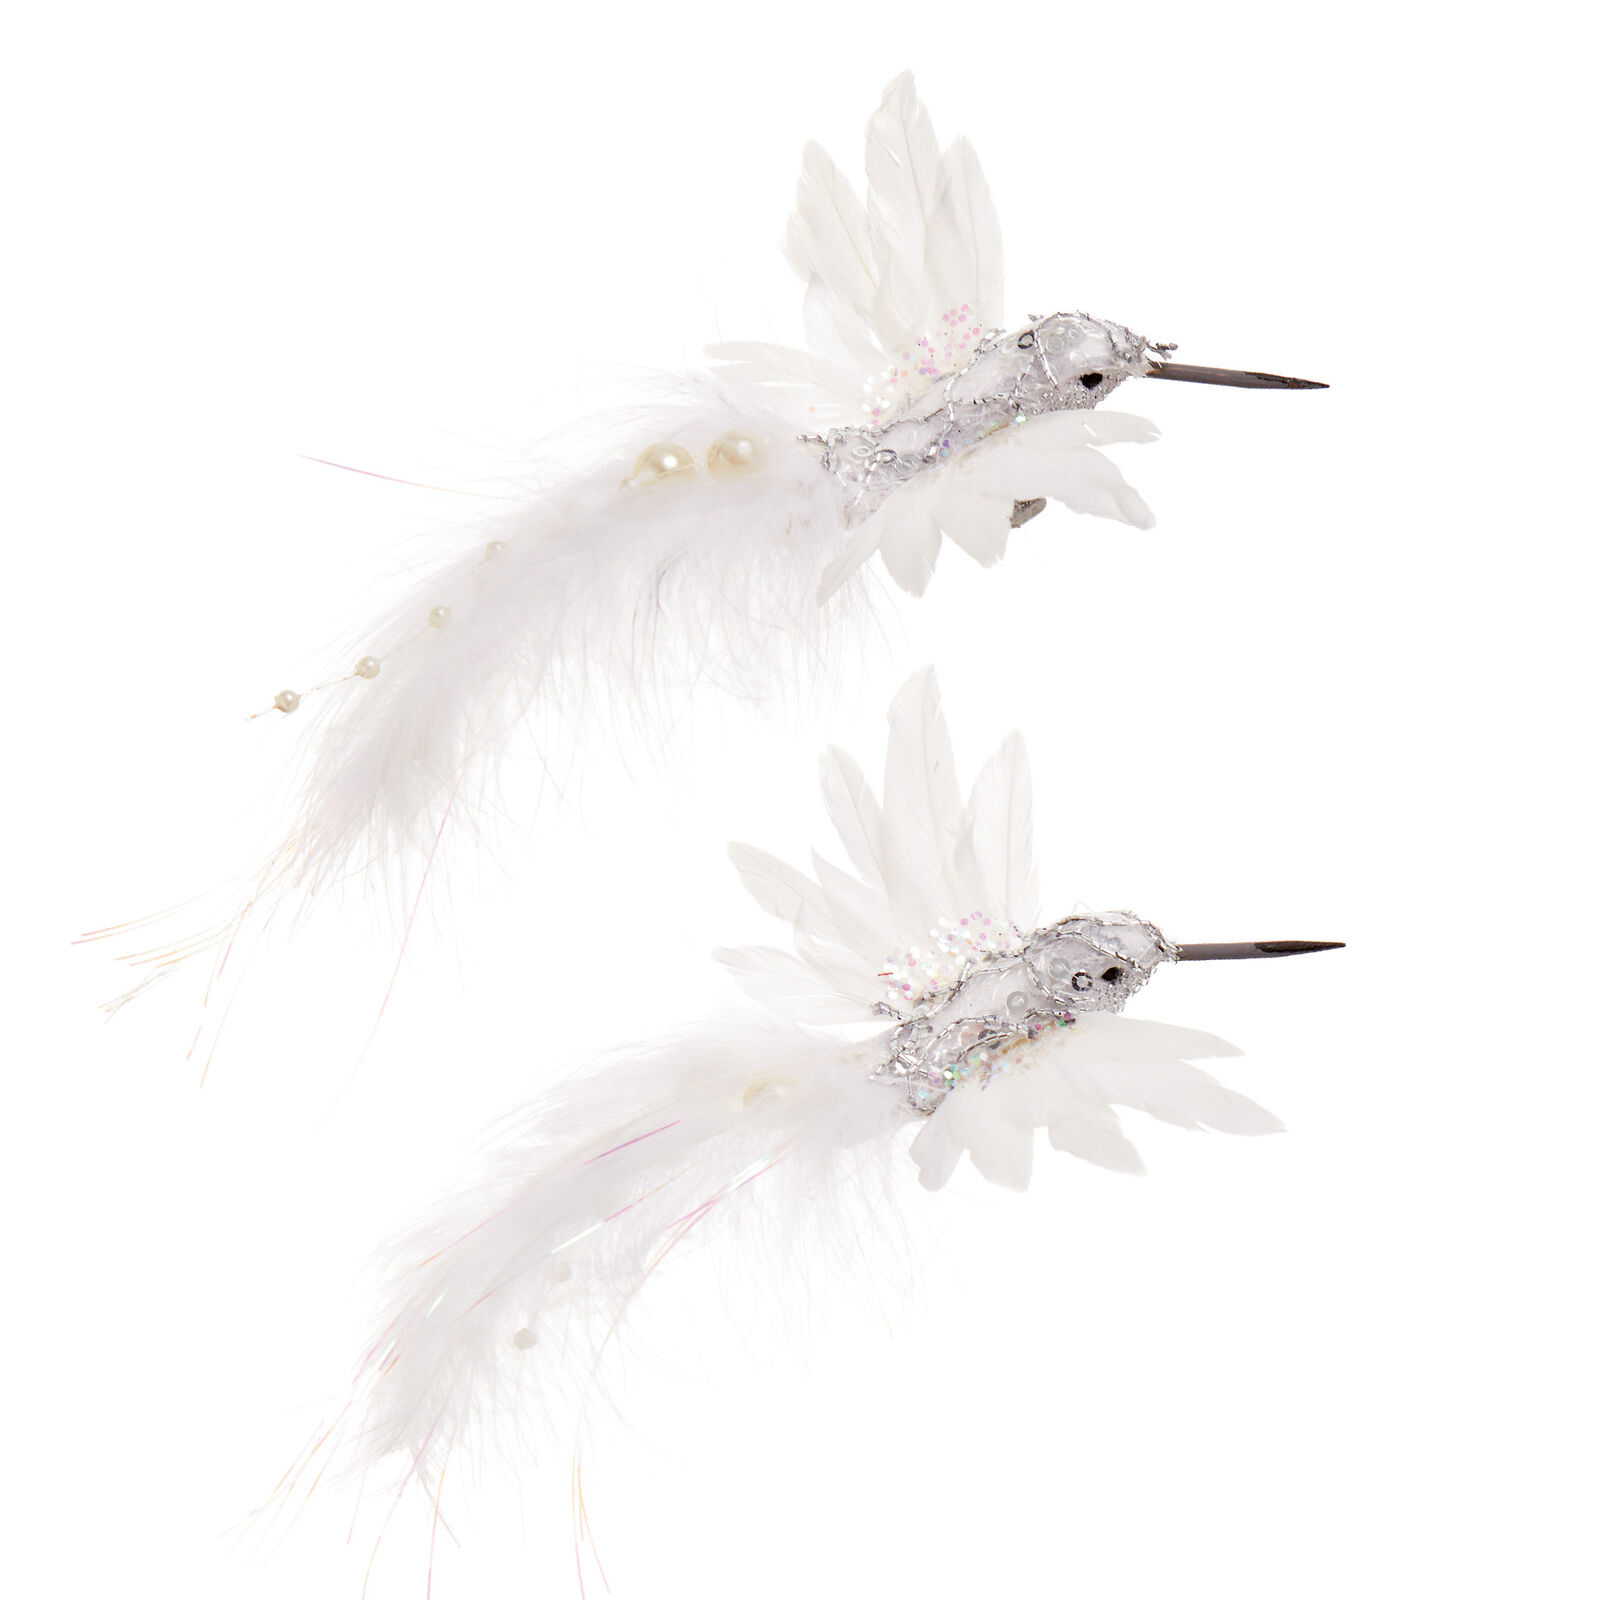 Flying Bird 15cm /'White/' /& Real Feather Premier Christmas Decoration Pack x2